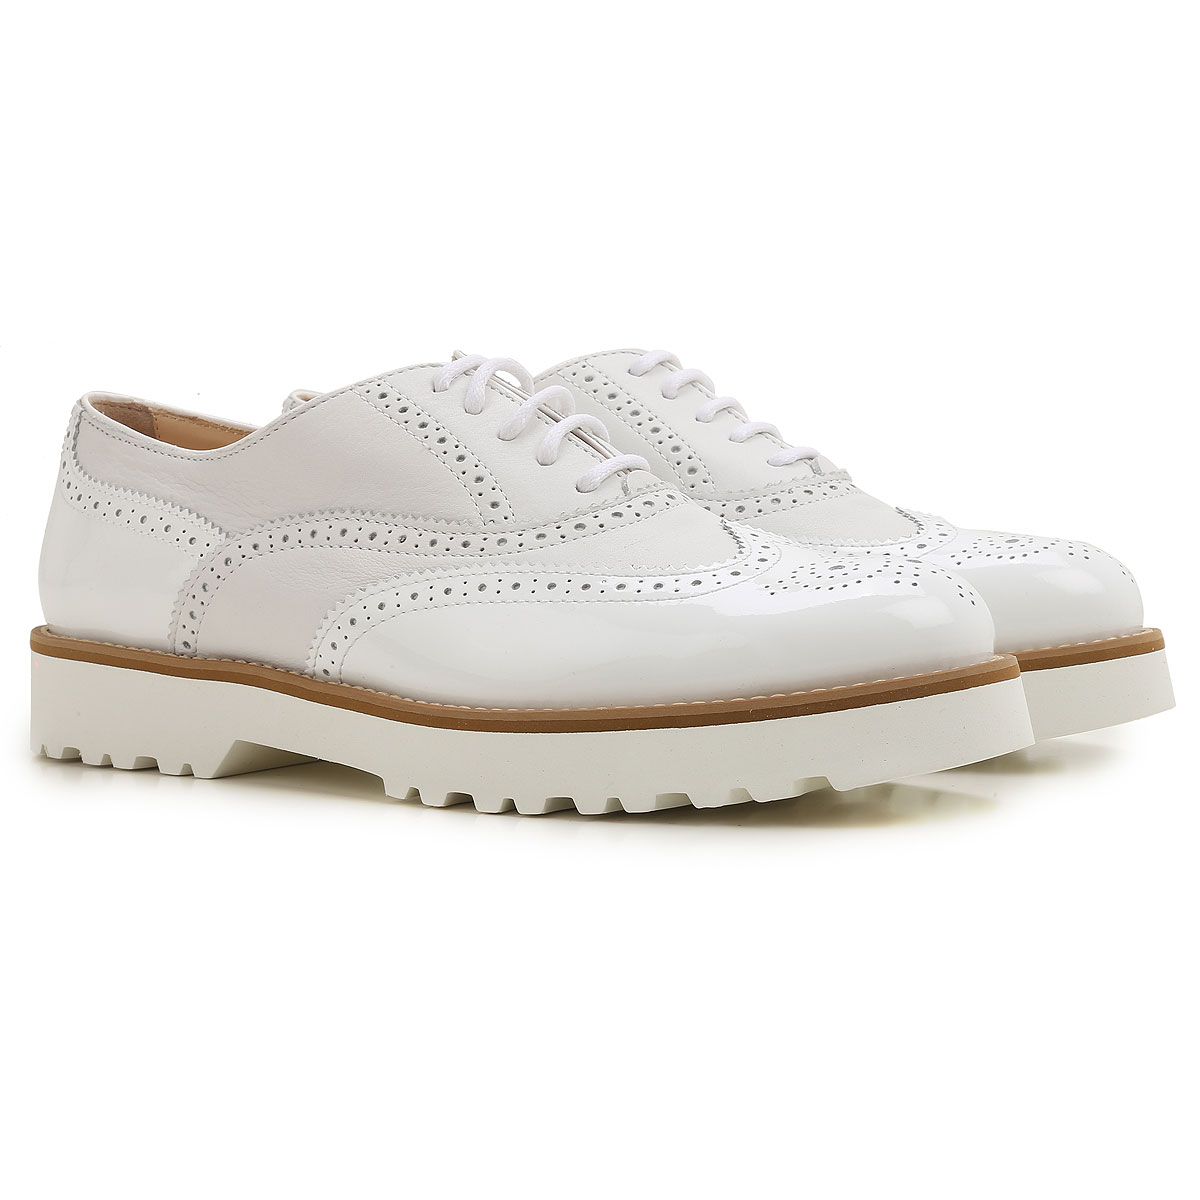 Image of Hogan Brogues Oxford Shoes On Sale in Outlet, White, Patent Leather, 2017, 5 5.5 6 6.5 9